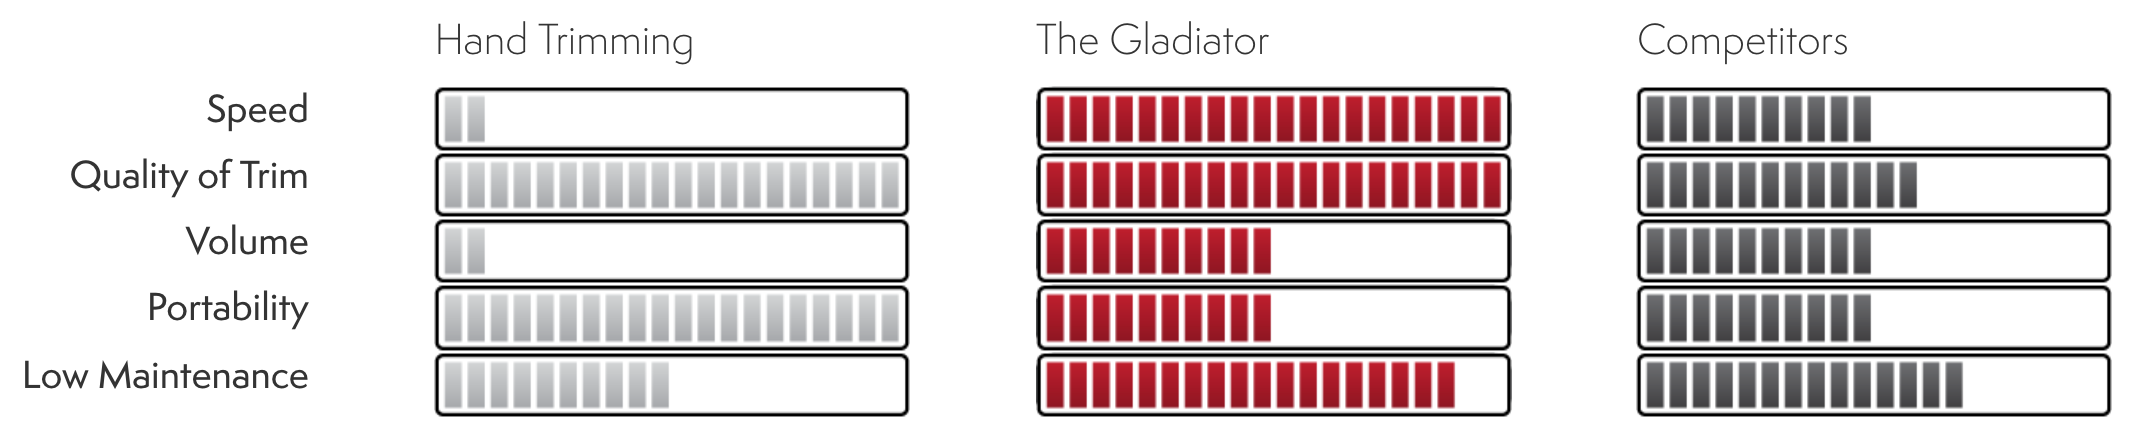 Compare the CenturionPro Gladiator trimmer to hand trimming or the competitors.